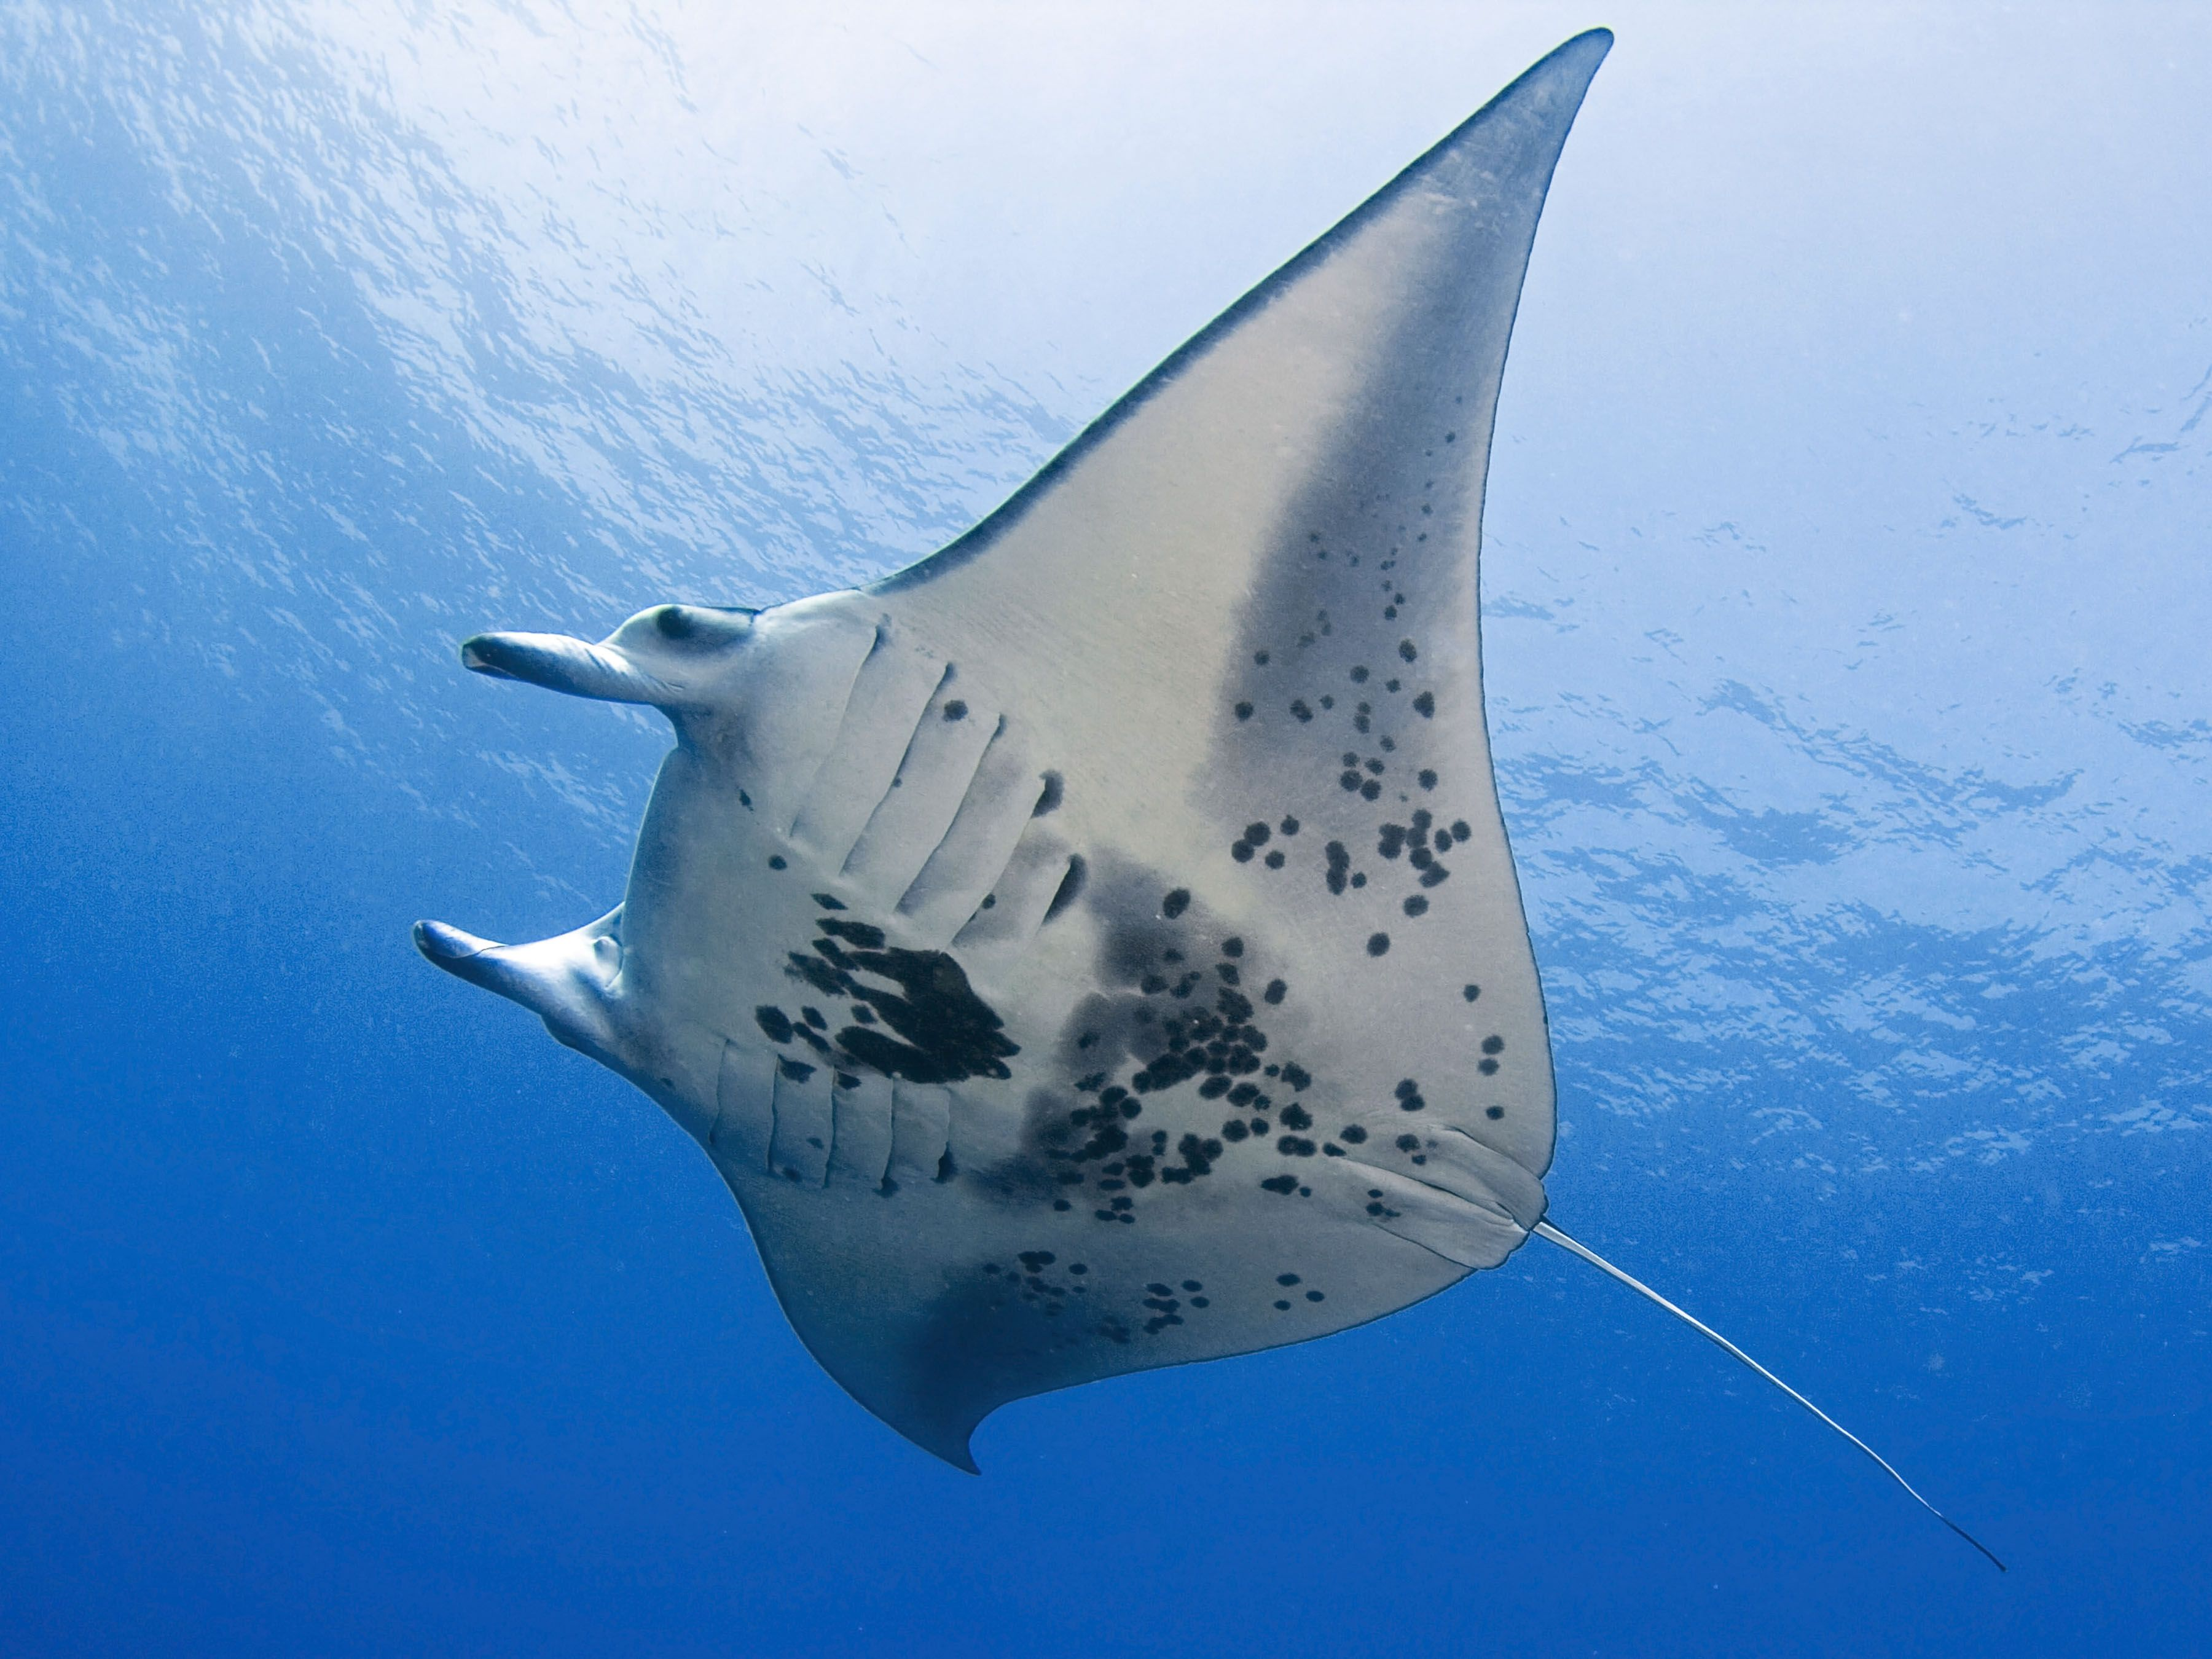 Manta ray swimming underwater with its dorsal fins spread open viewed - Manta Ray Hayden